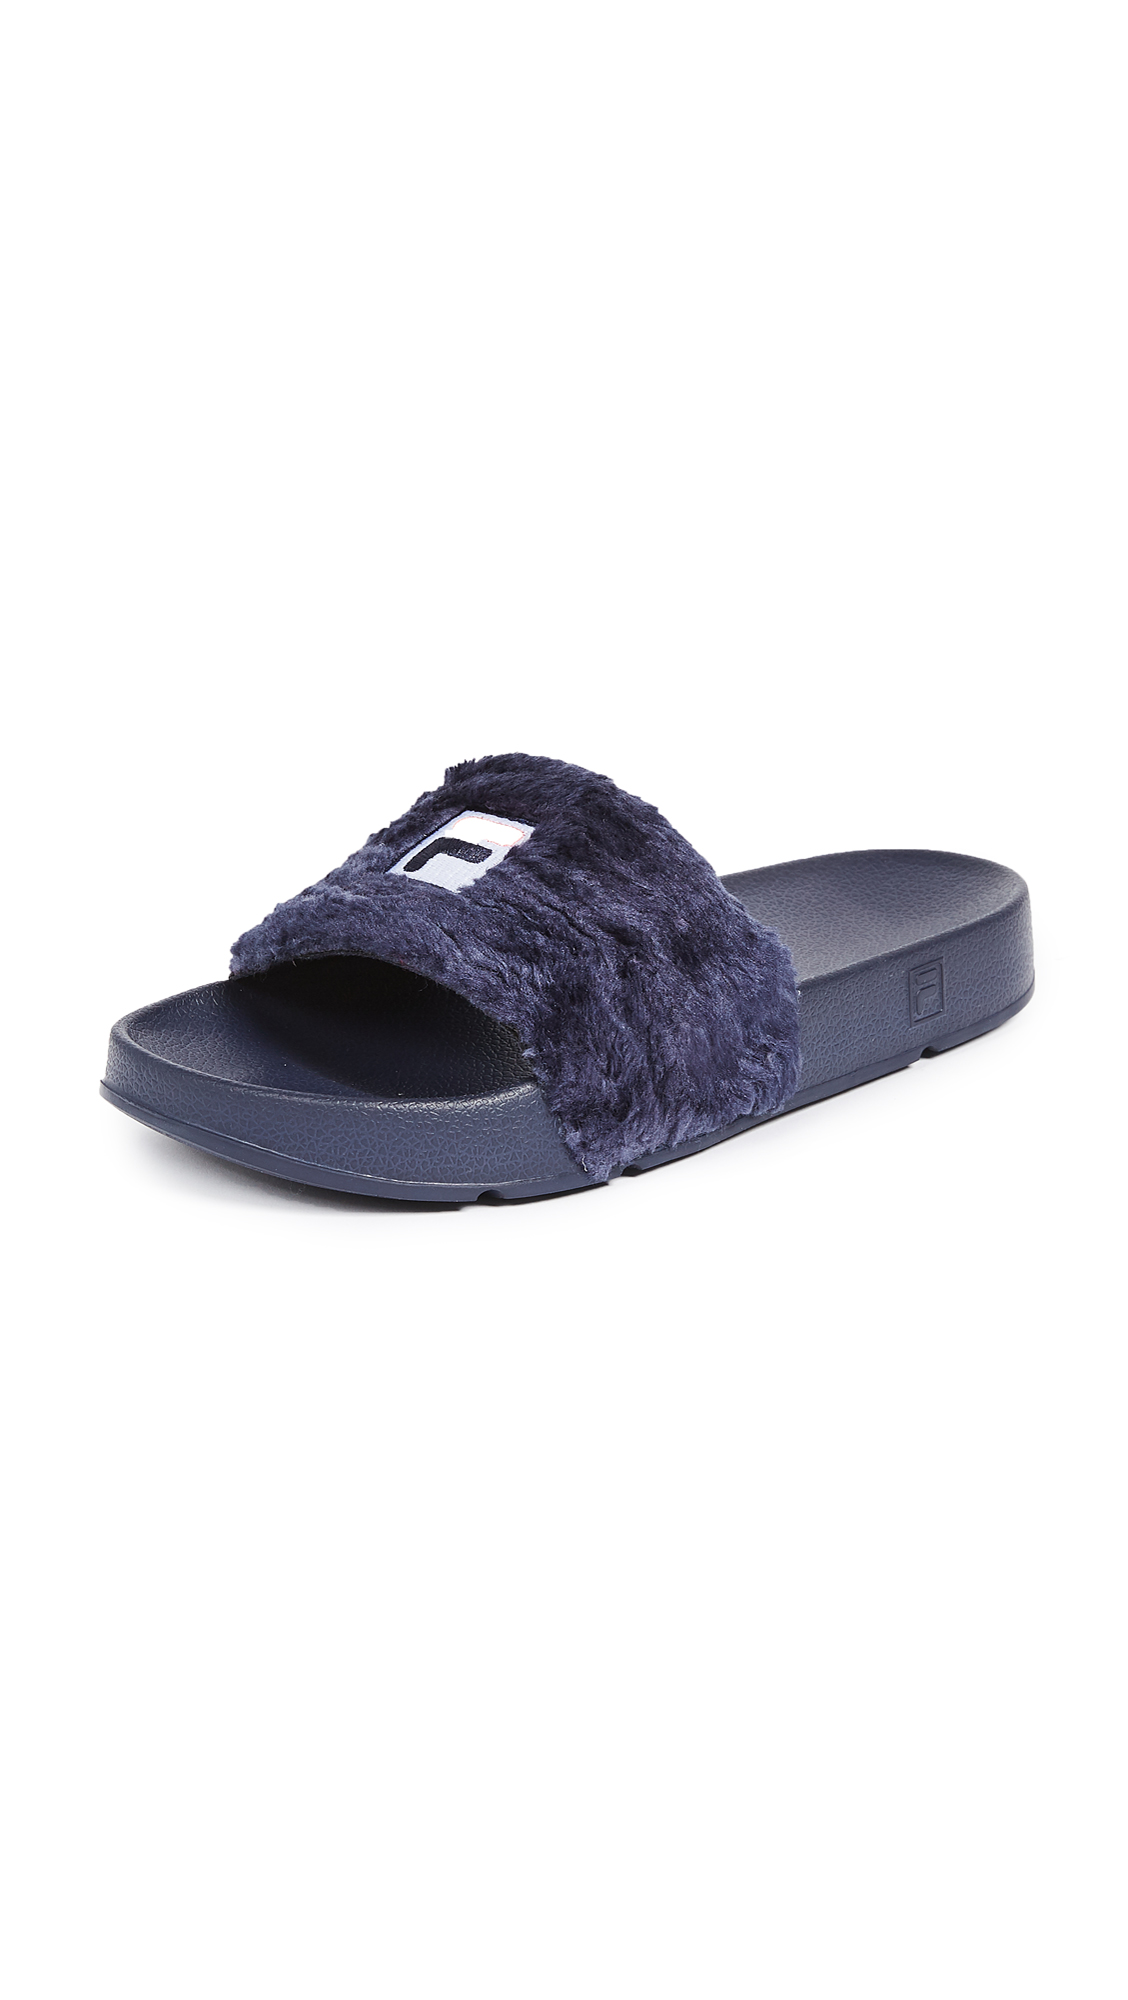 Baja East x FILA Sherpa Pool Slides - Navy